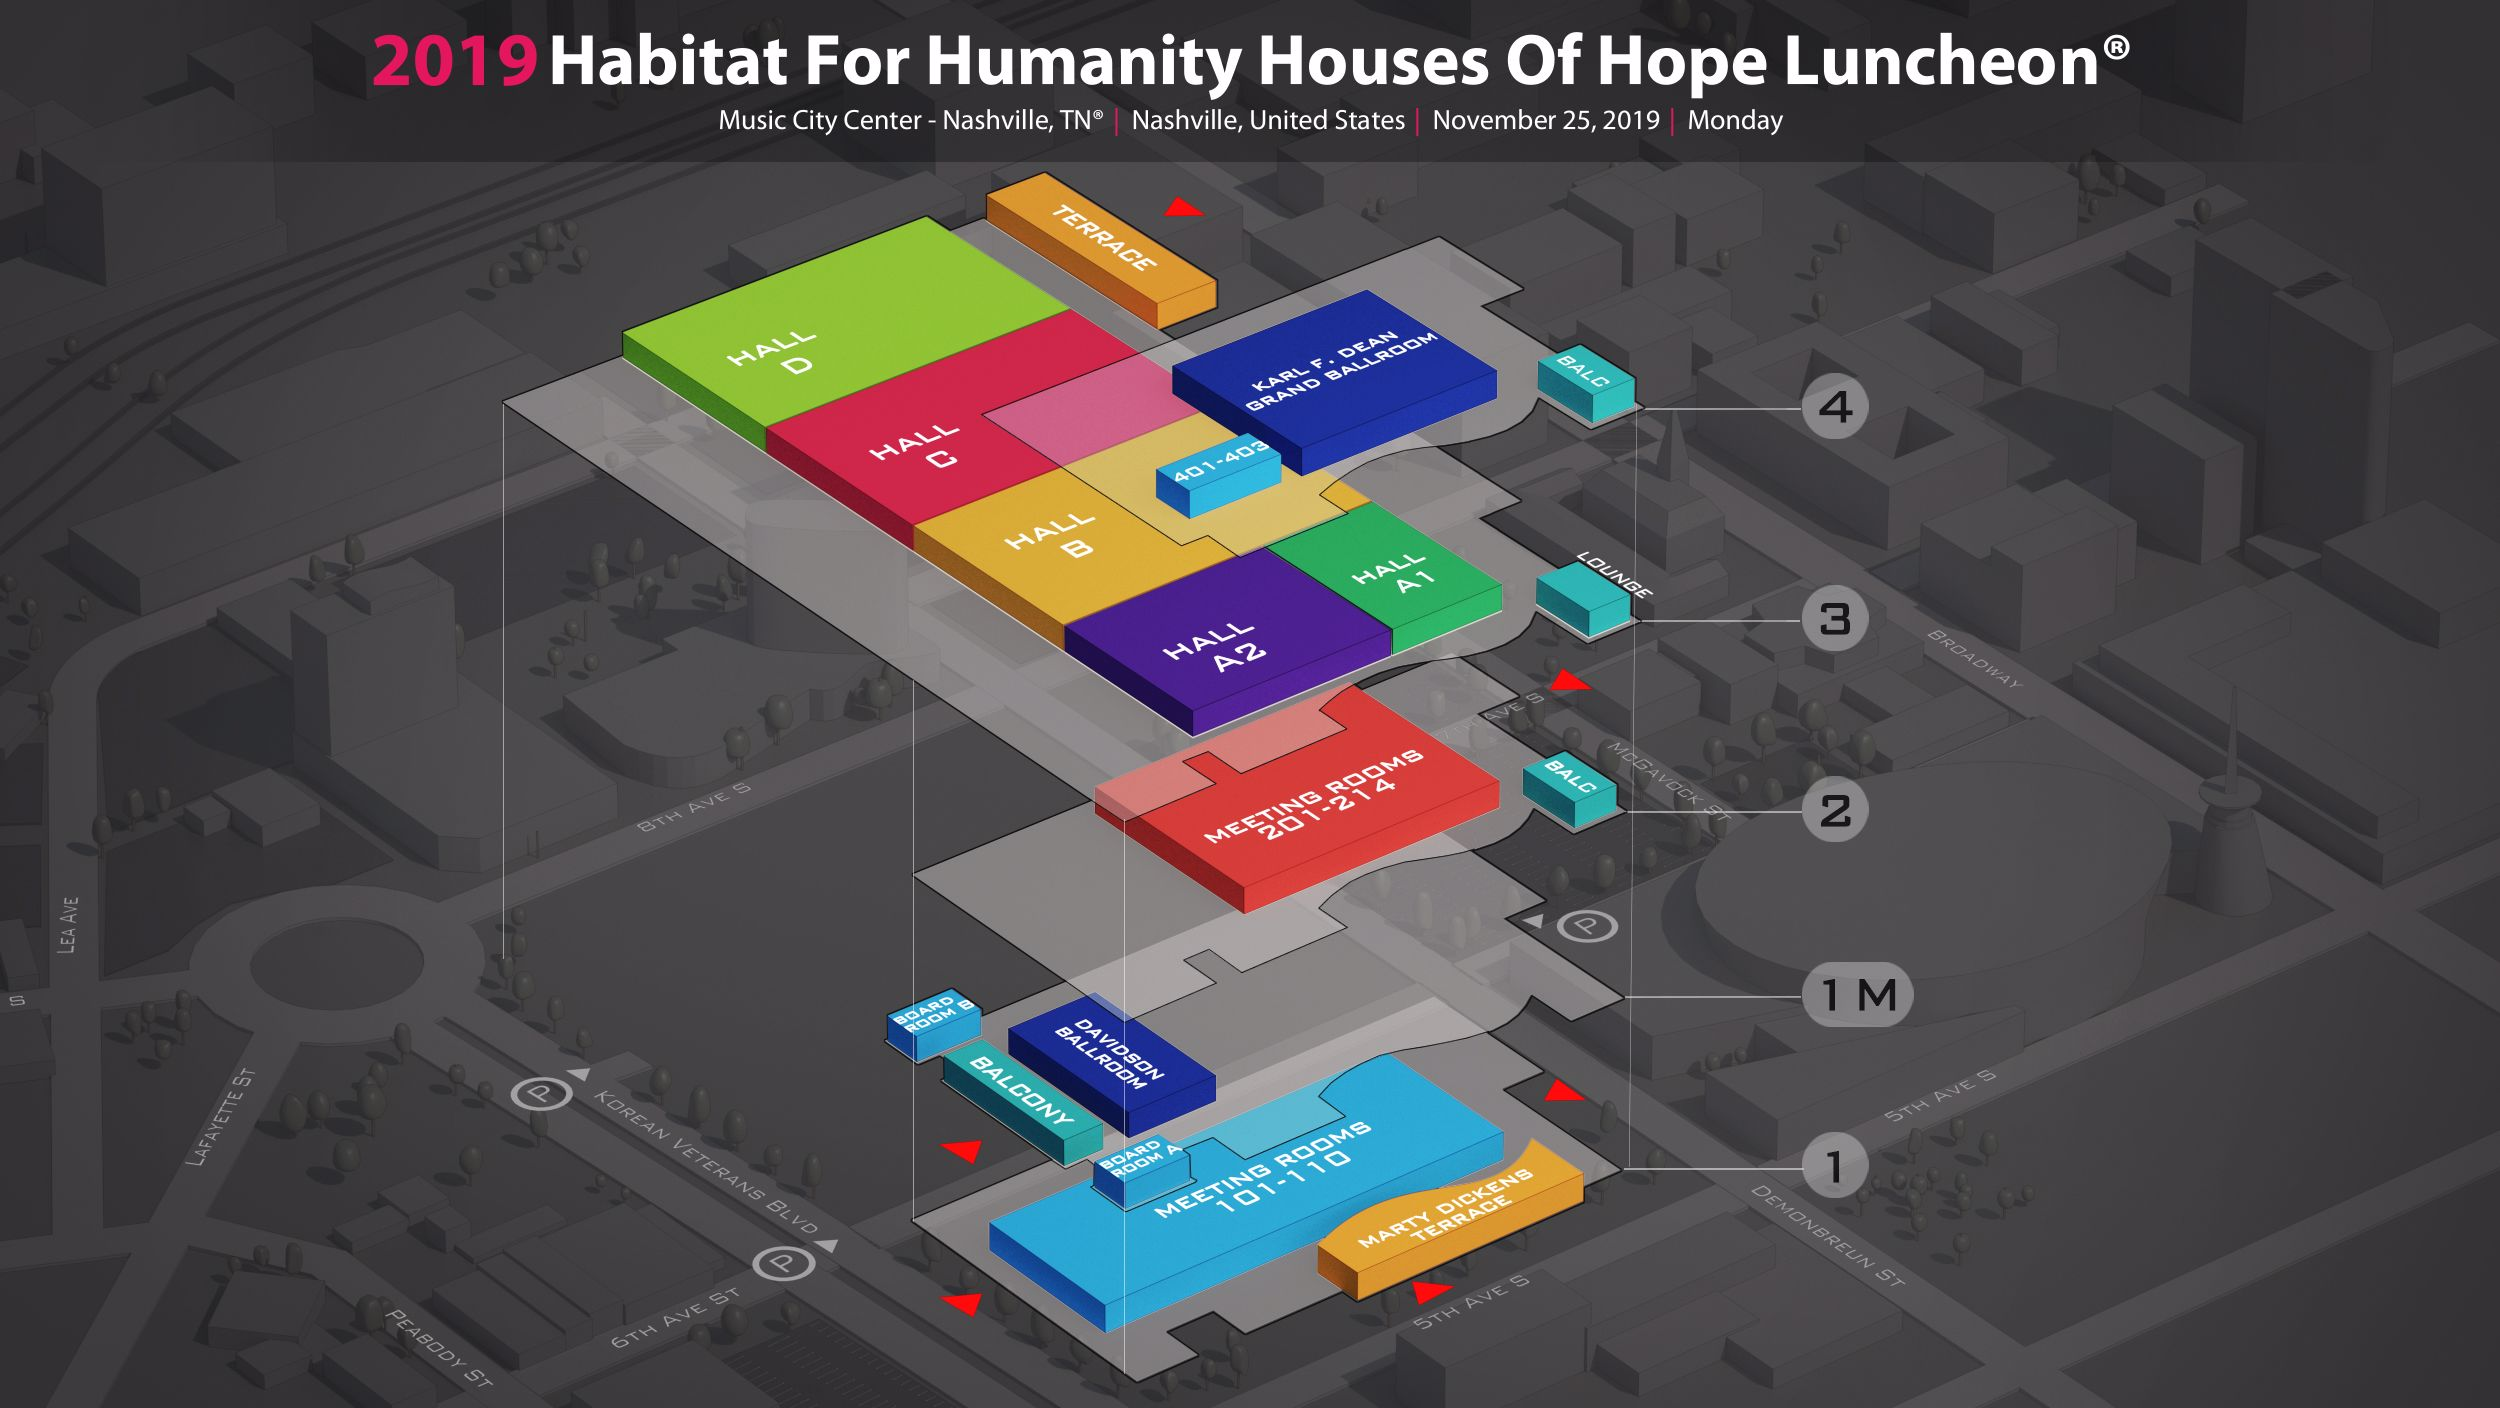 Habitat For Humanity Houses Of Hope Luncheon 2019 In Music City Center Nashville Tn